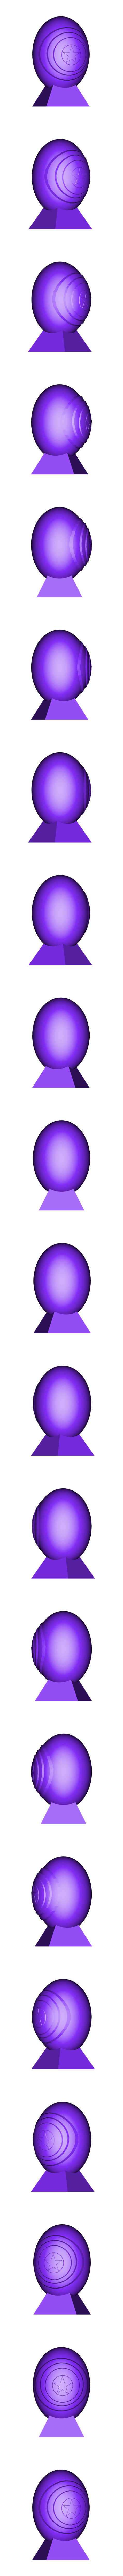 Super oeufs captain america.stl Download free STL file Super Eggs Collection with base • 3D printer object, psl